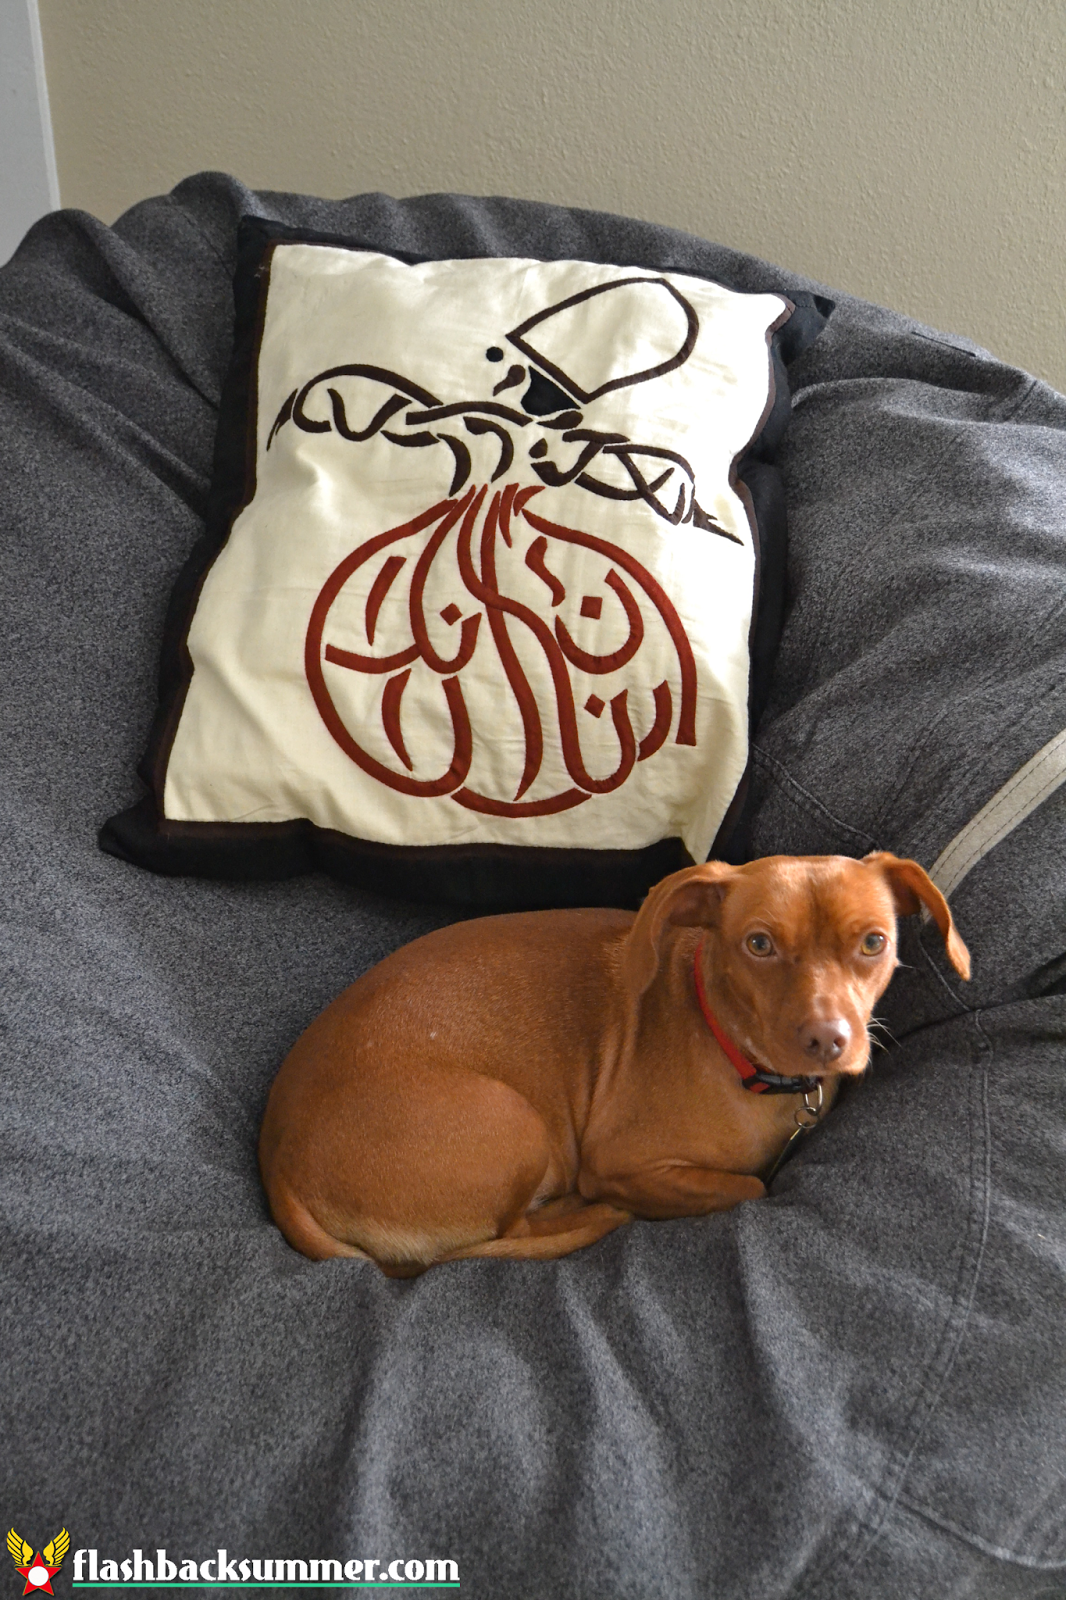 Flashback Summer: My Not-a-Magazine-Shoot Living Room - Egyptian Pillow, Viszla-dachshund